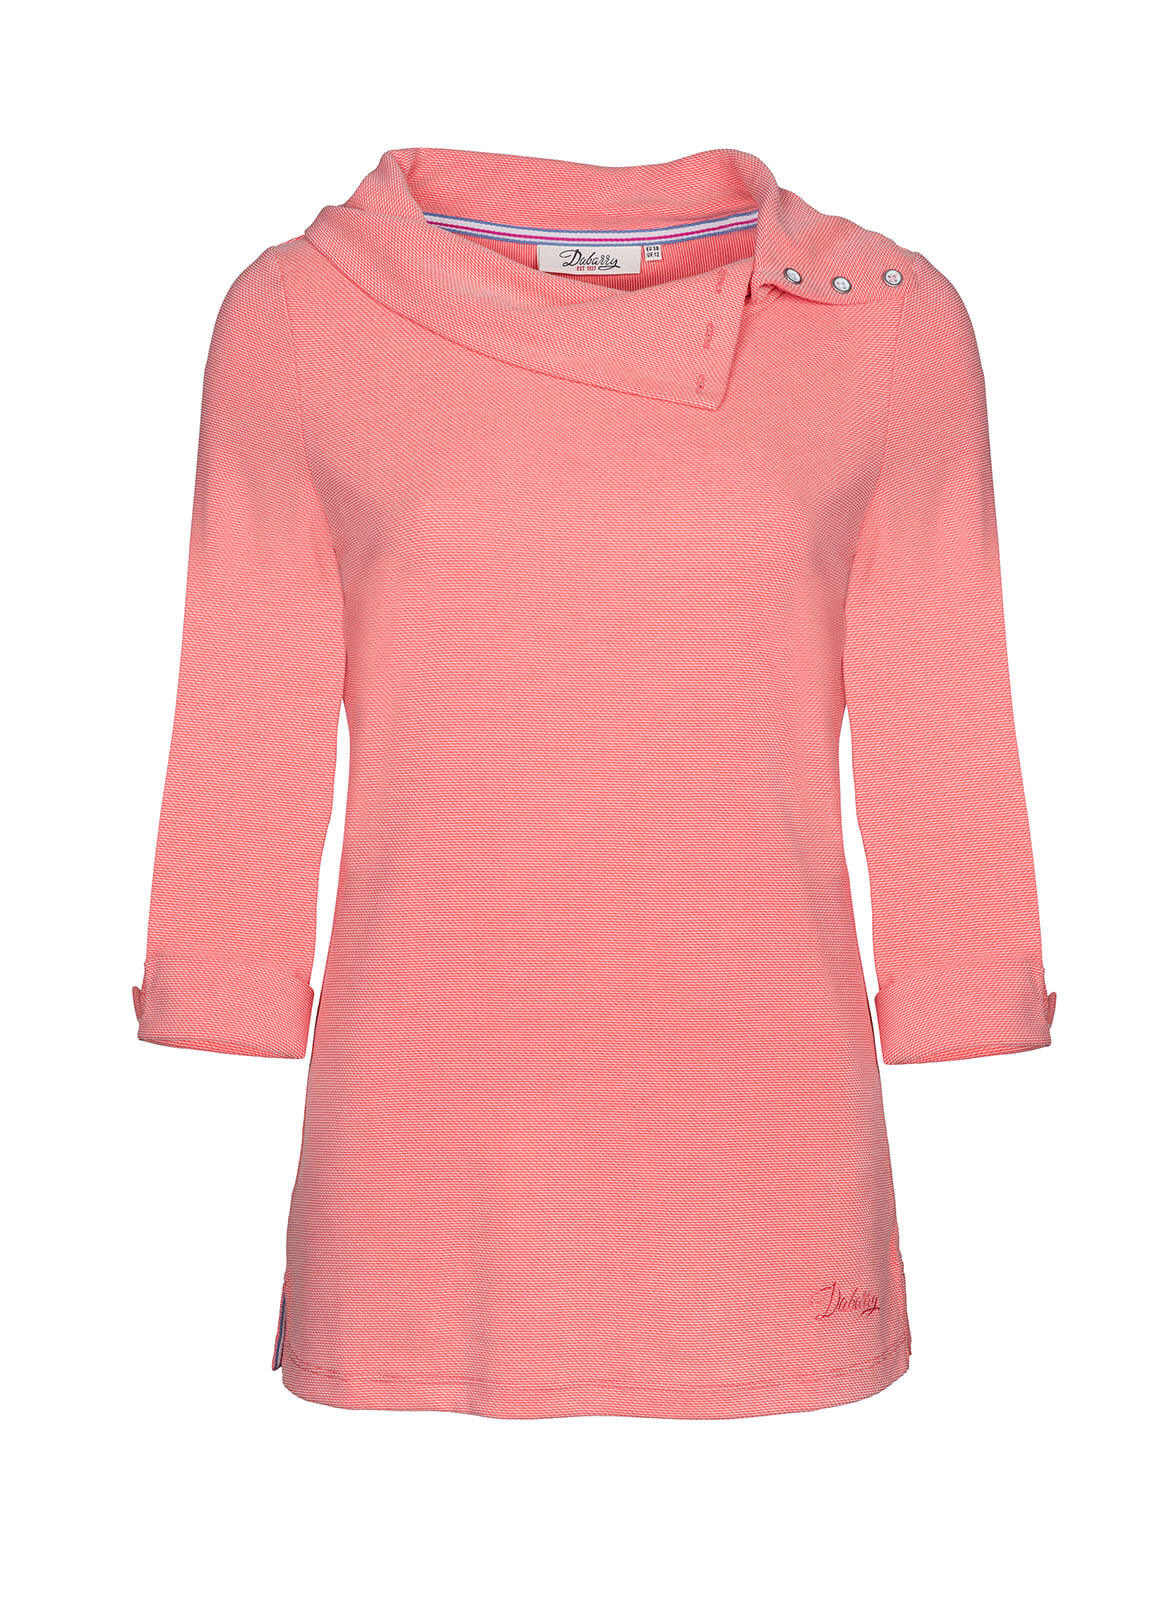 Dubarry_Malbay Three-quater sleeve top - Coral_Image_2